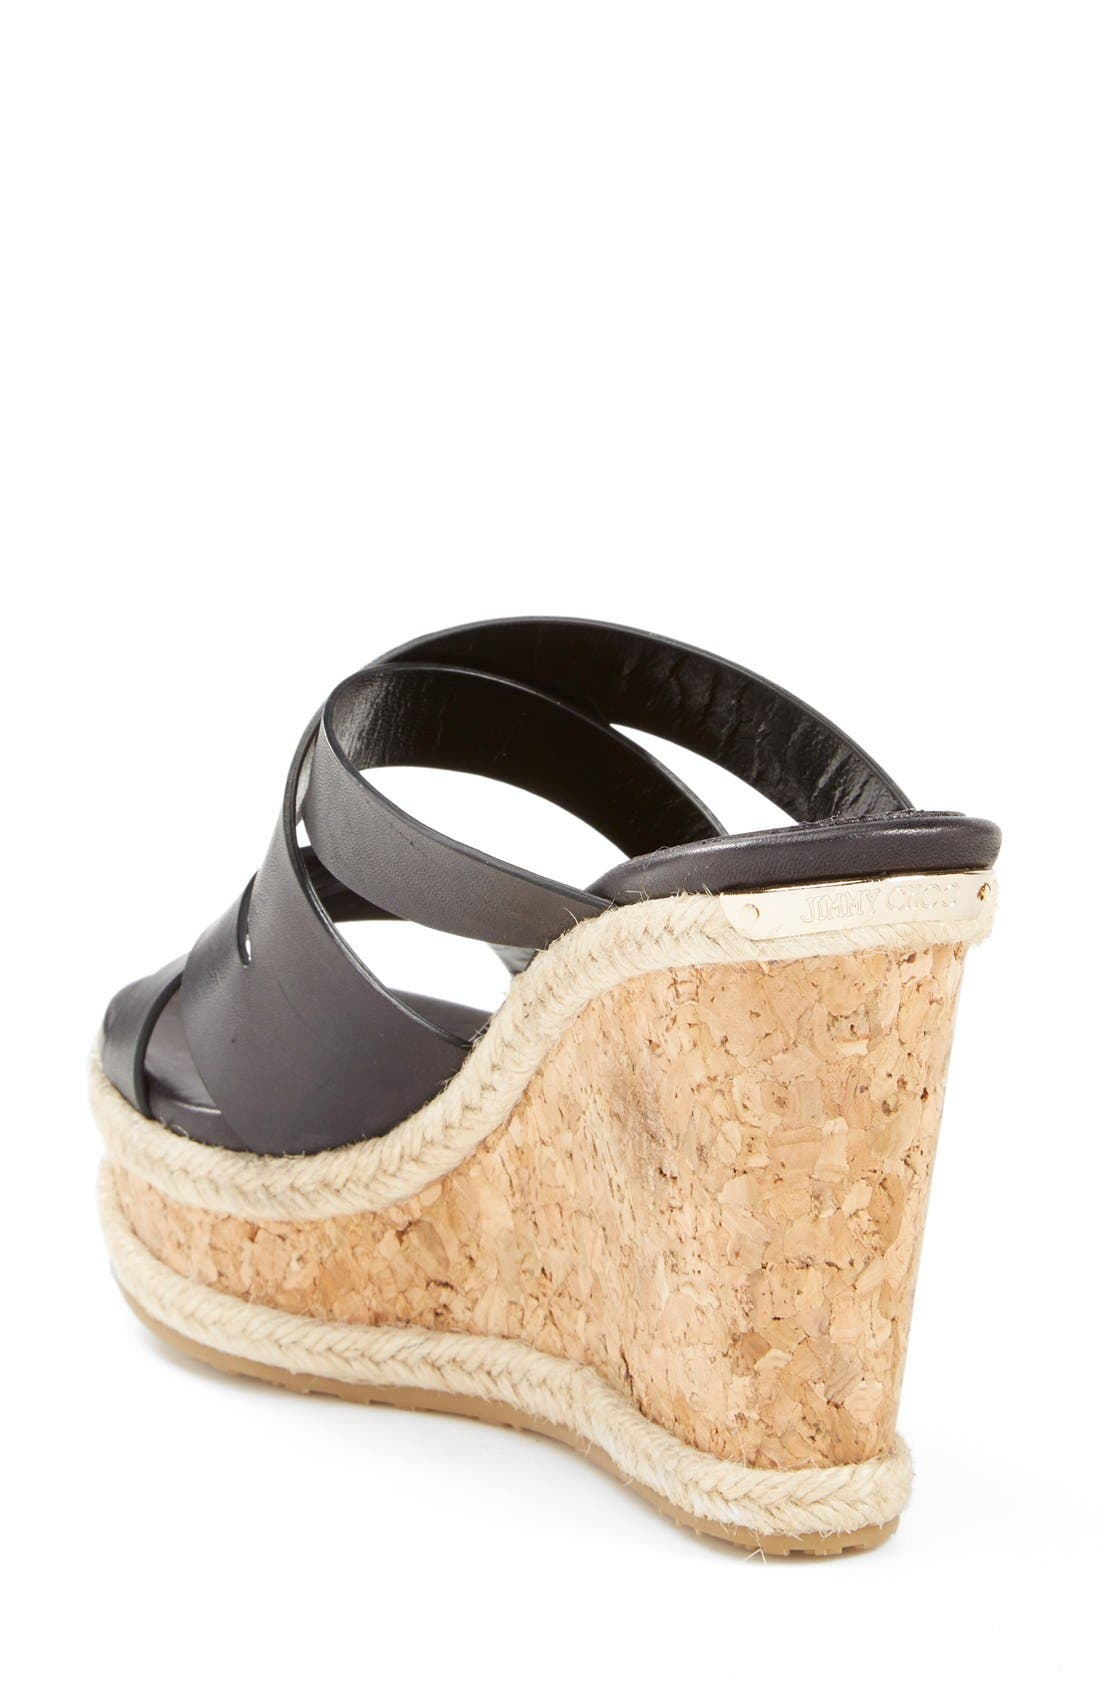 Alternate Image 2  - Jimmy Choo 'Prisma' Leather Wedge Sandal (Women)